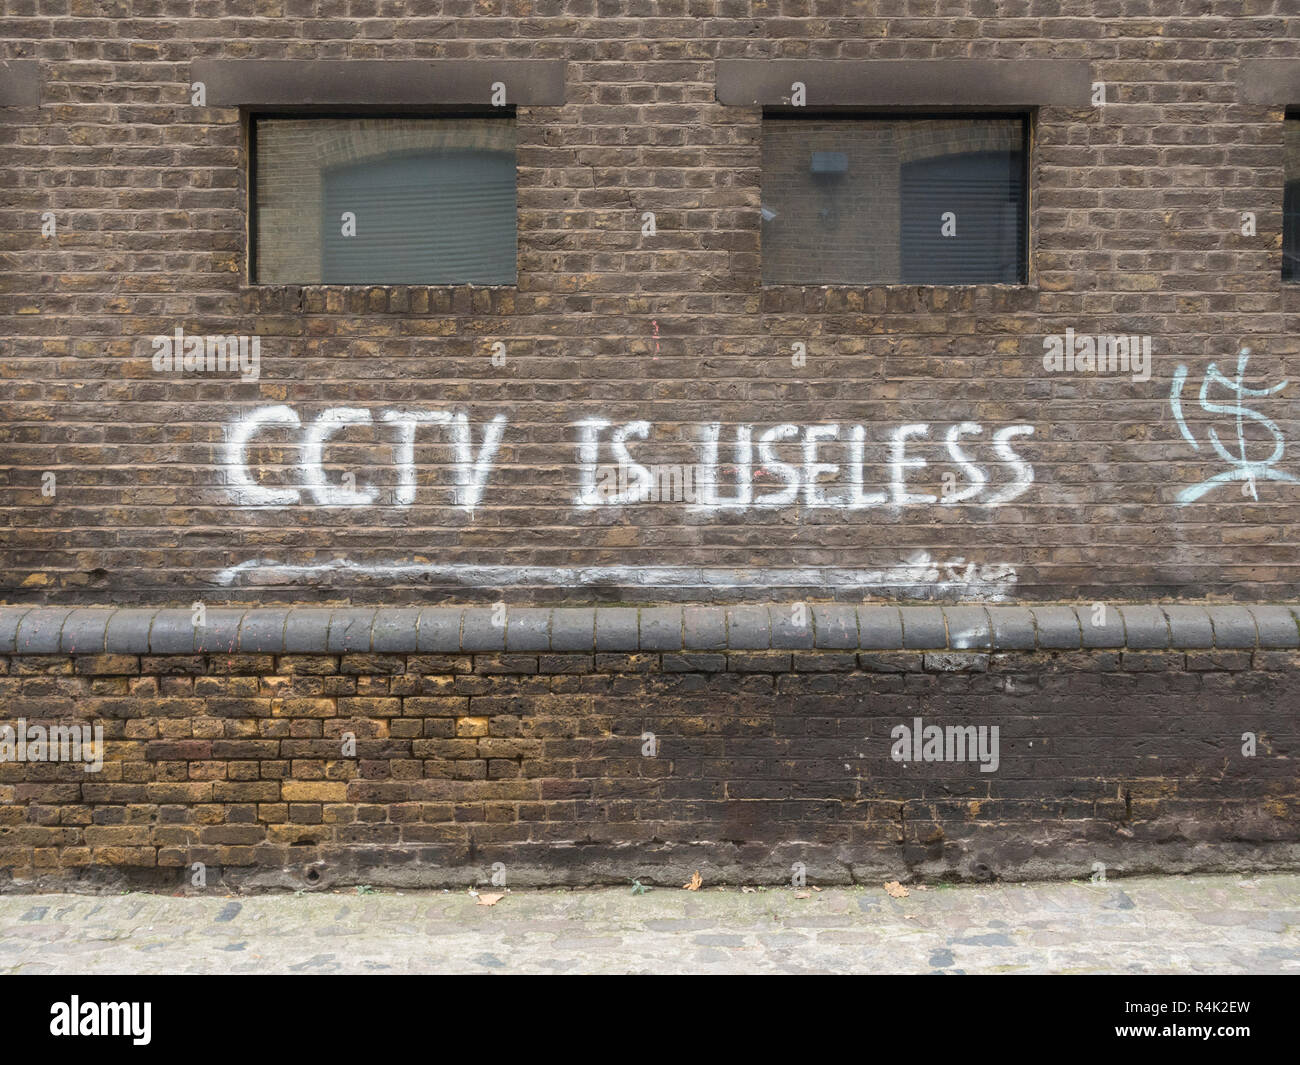 CCTV is useless slogan Stock Photo